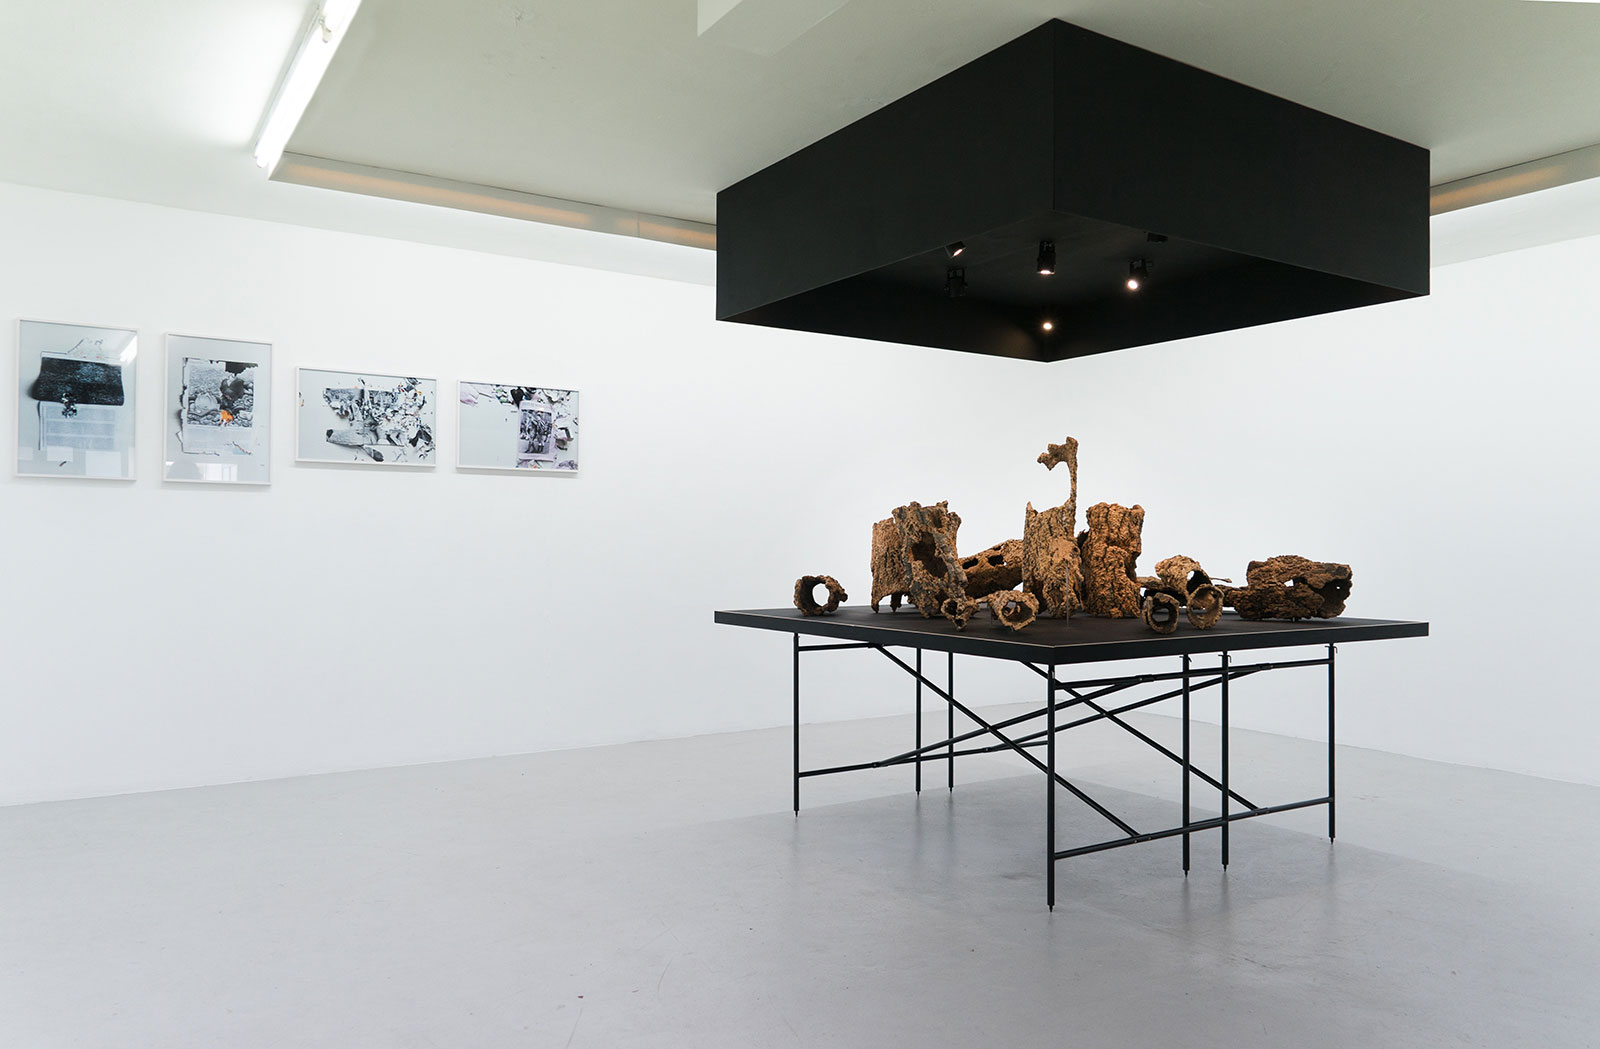 Installation view: THE WORLD WE LIVE IN, kjubh kunstverein, Köln